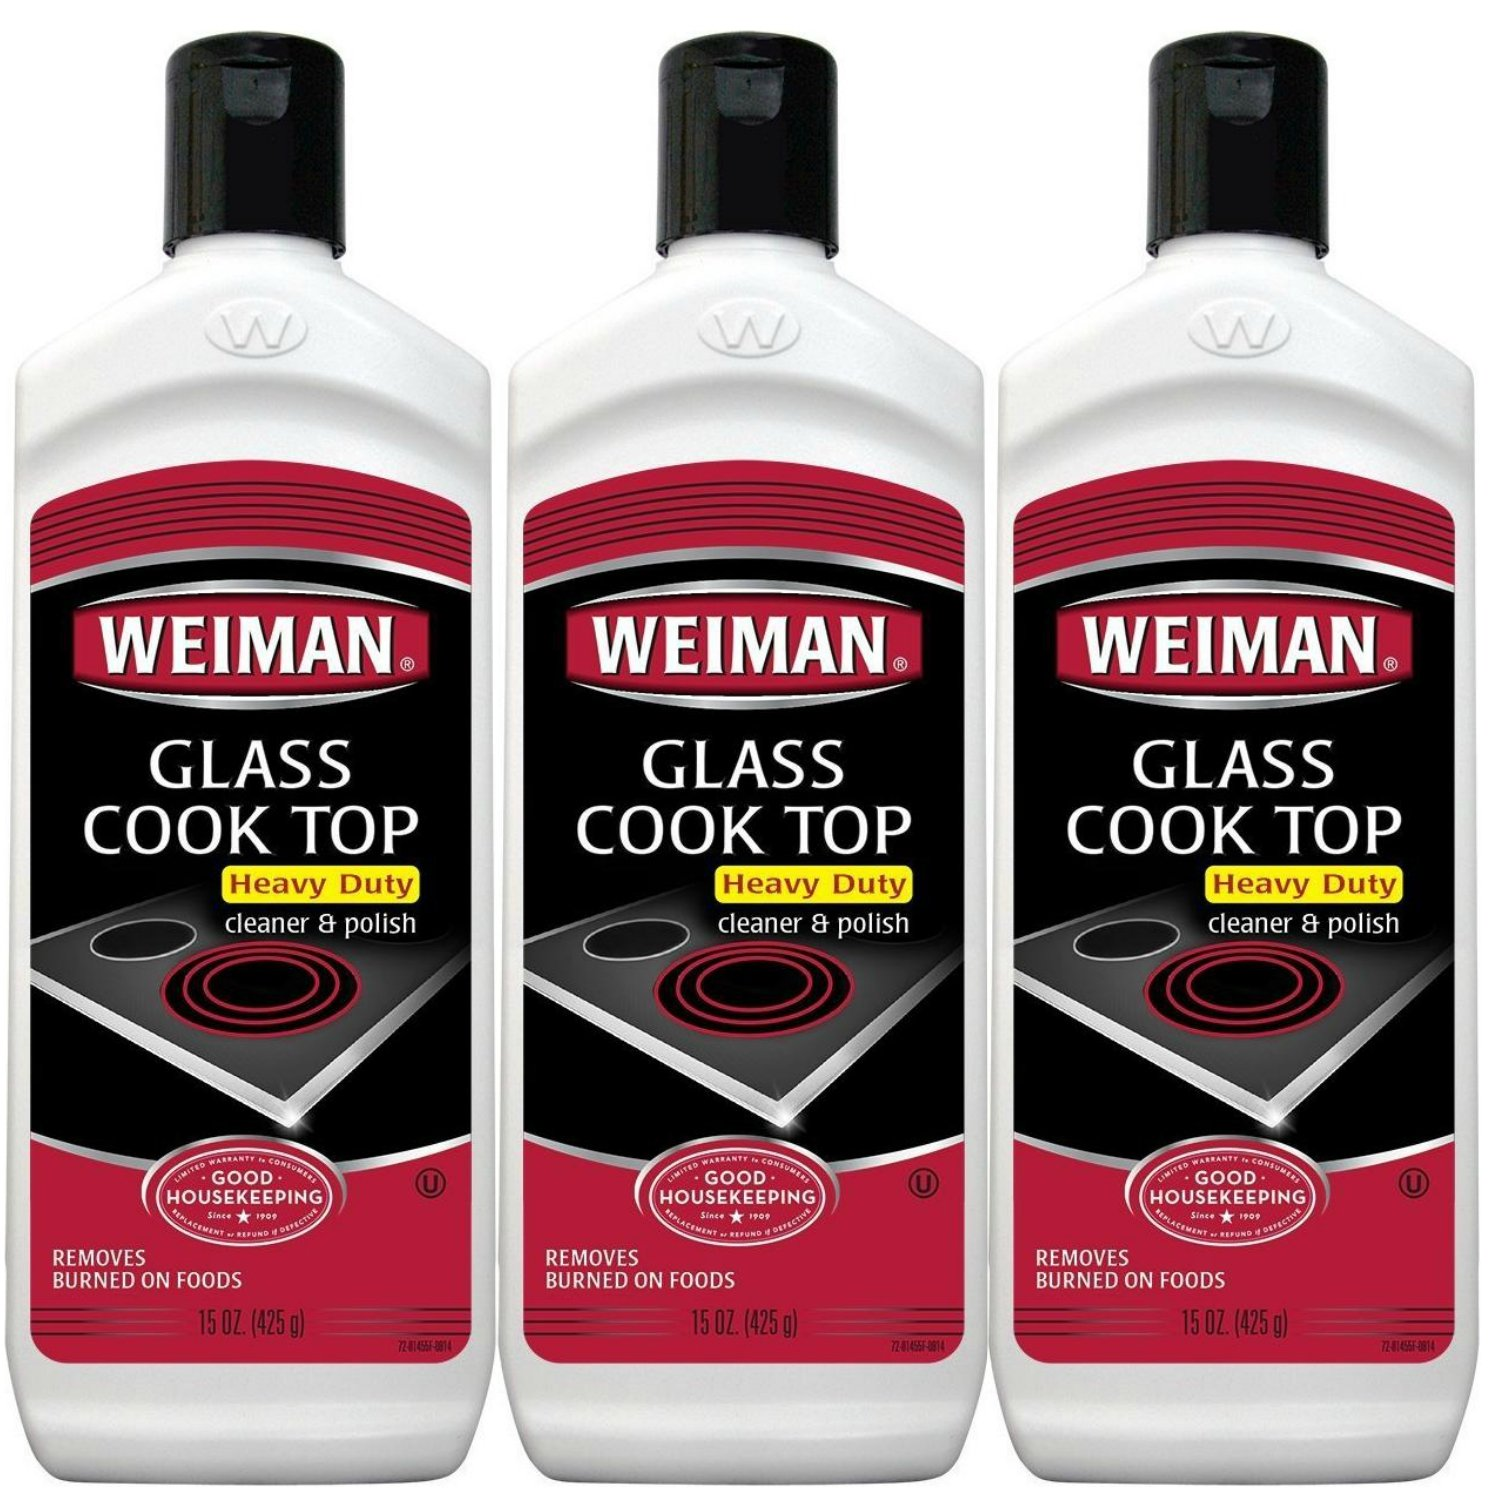 Weiman Glass Cooktop Heavy Duty Cleaner & Polish - Shines and Protects Glass/Ceramic Smooth Top Ranges with its Gentle Formula - 15 Oz, Pack of 3